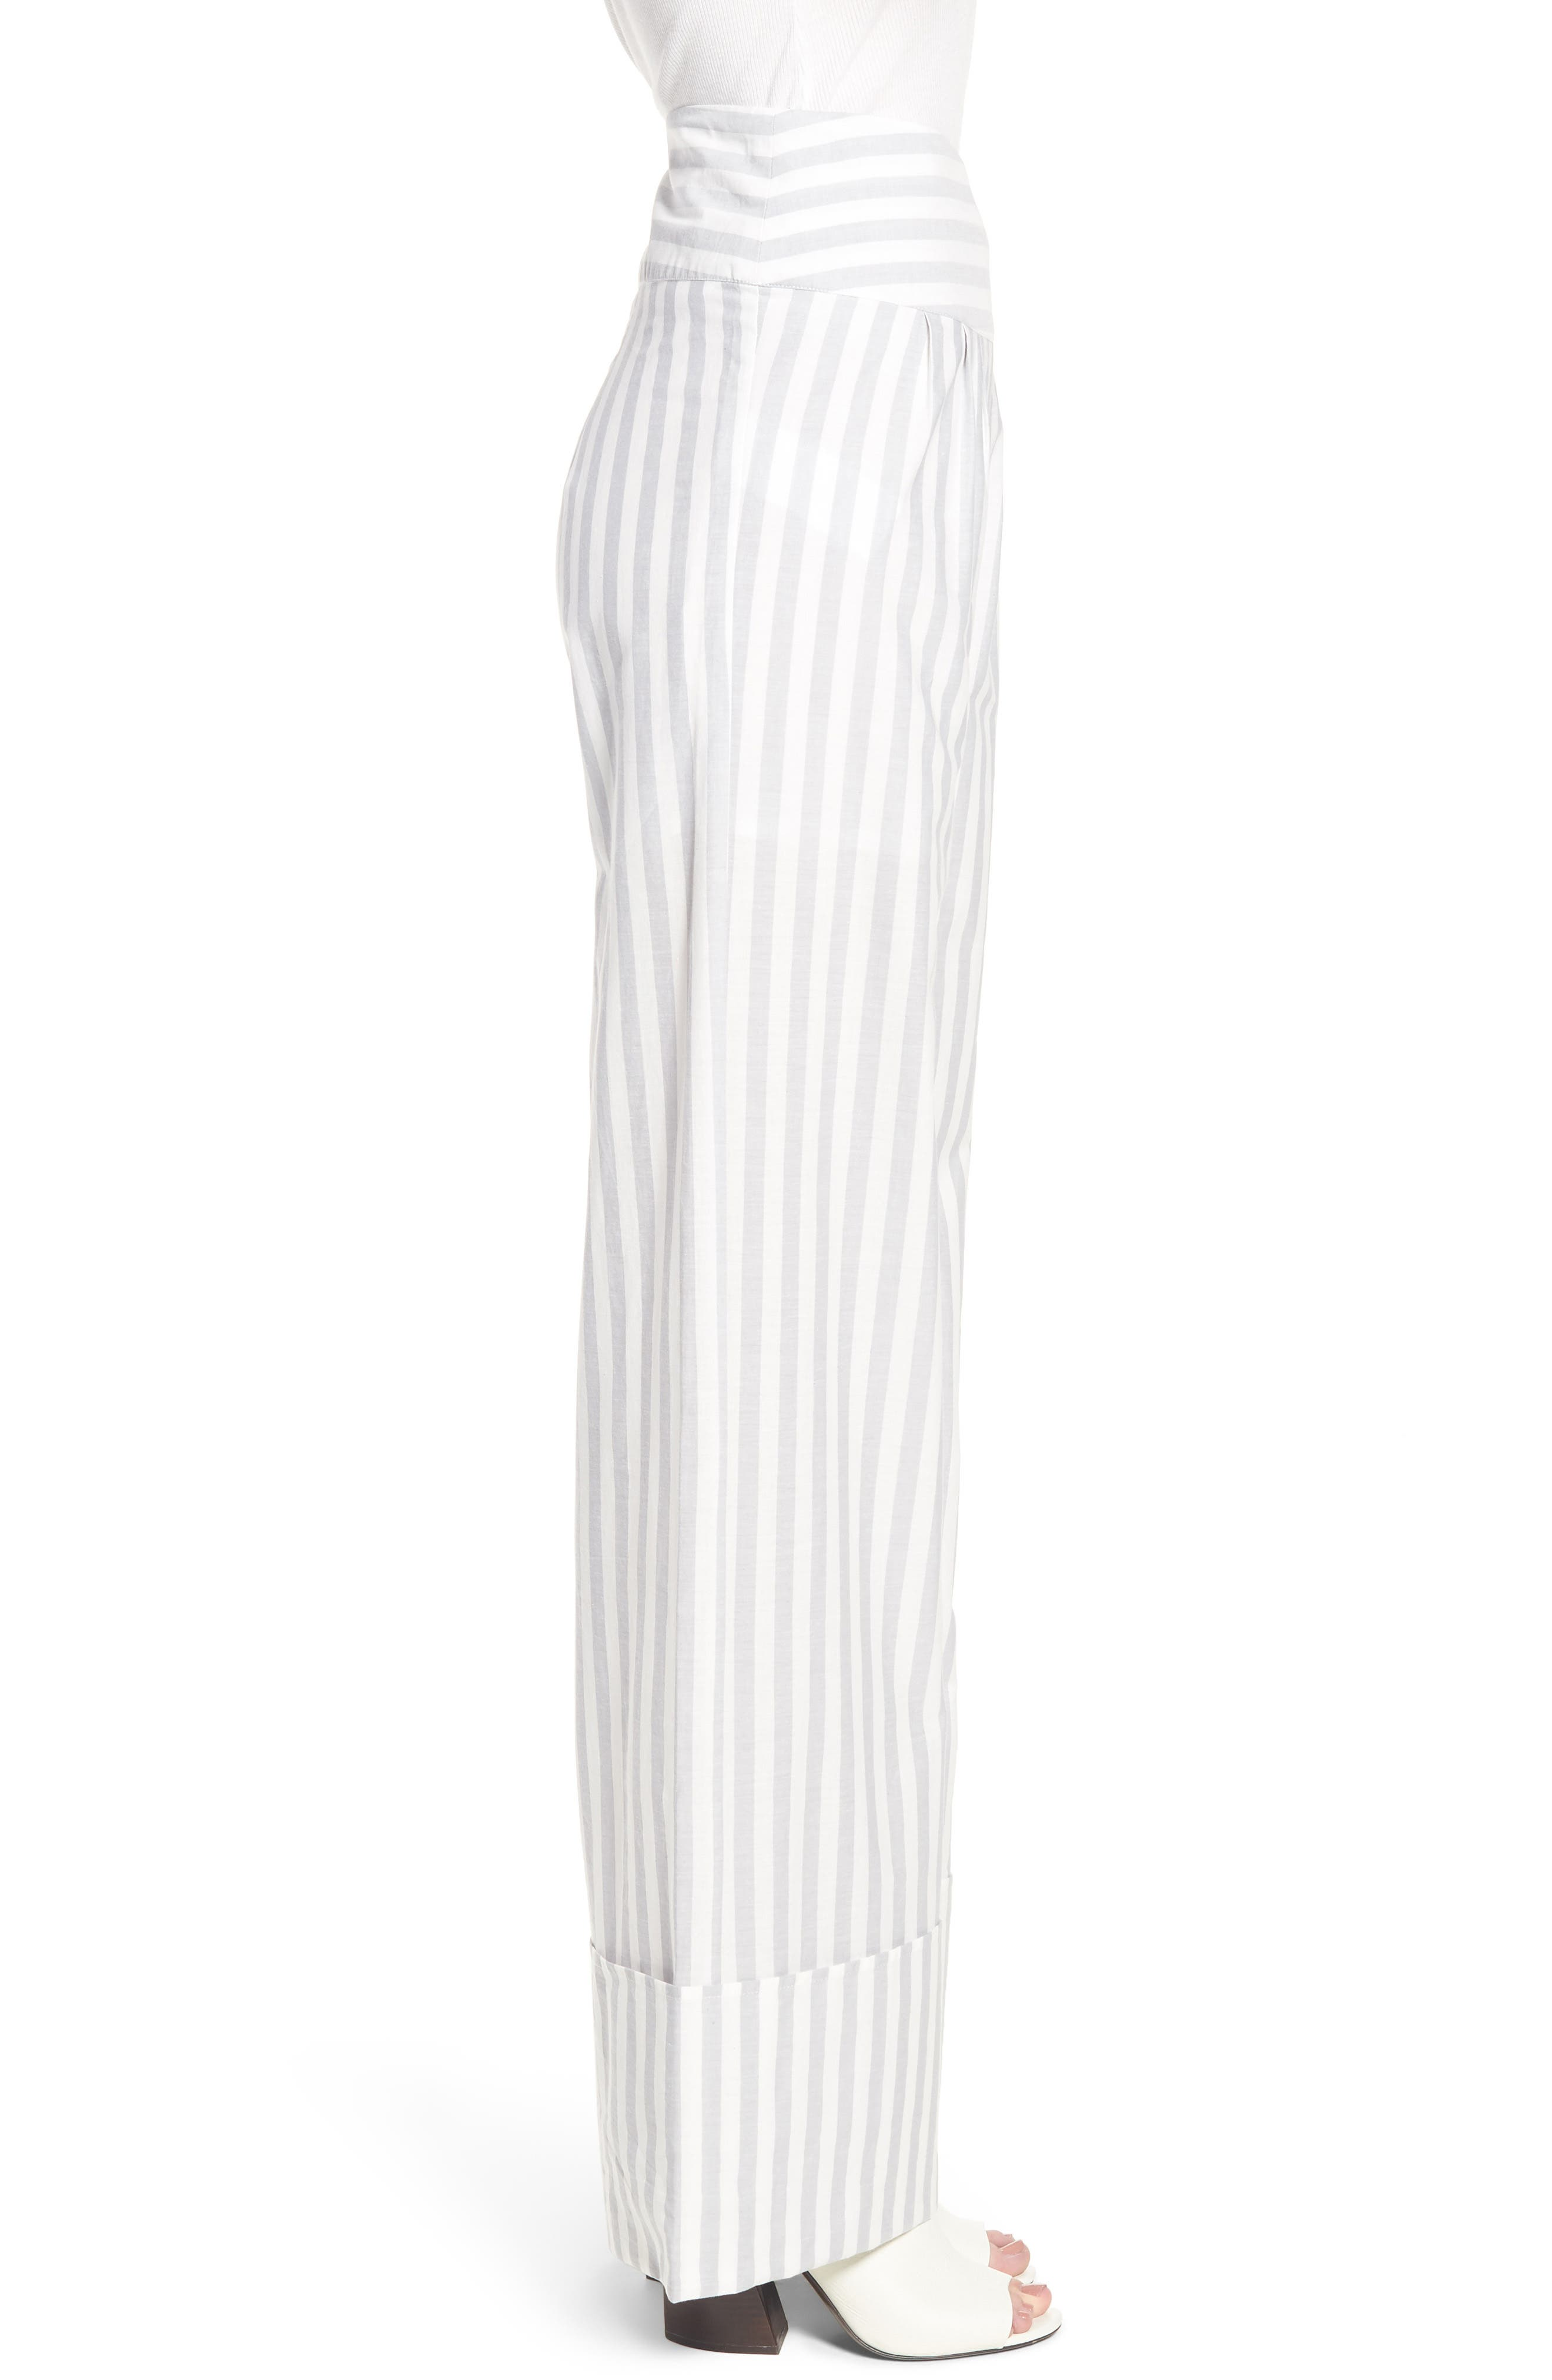 LOST INK,                             Wide Turn Up Stripe Trouser,                             Alternate thumbnail 3, color,                             020